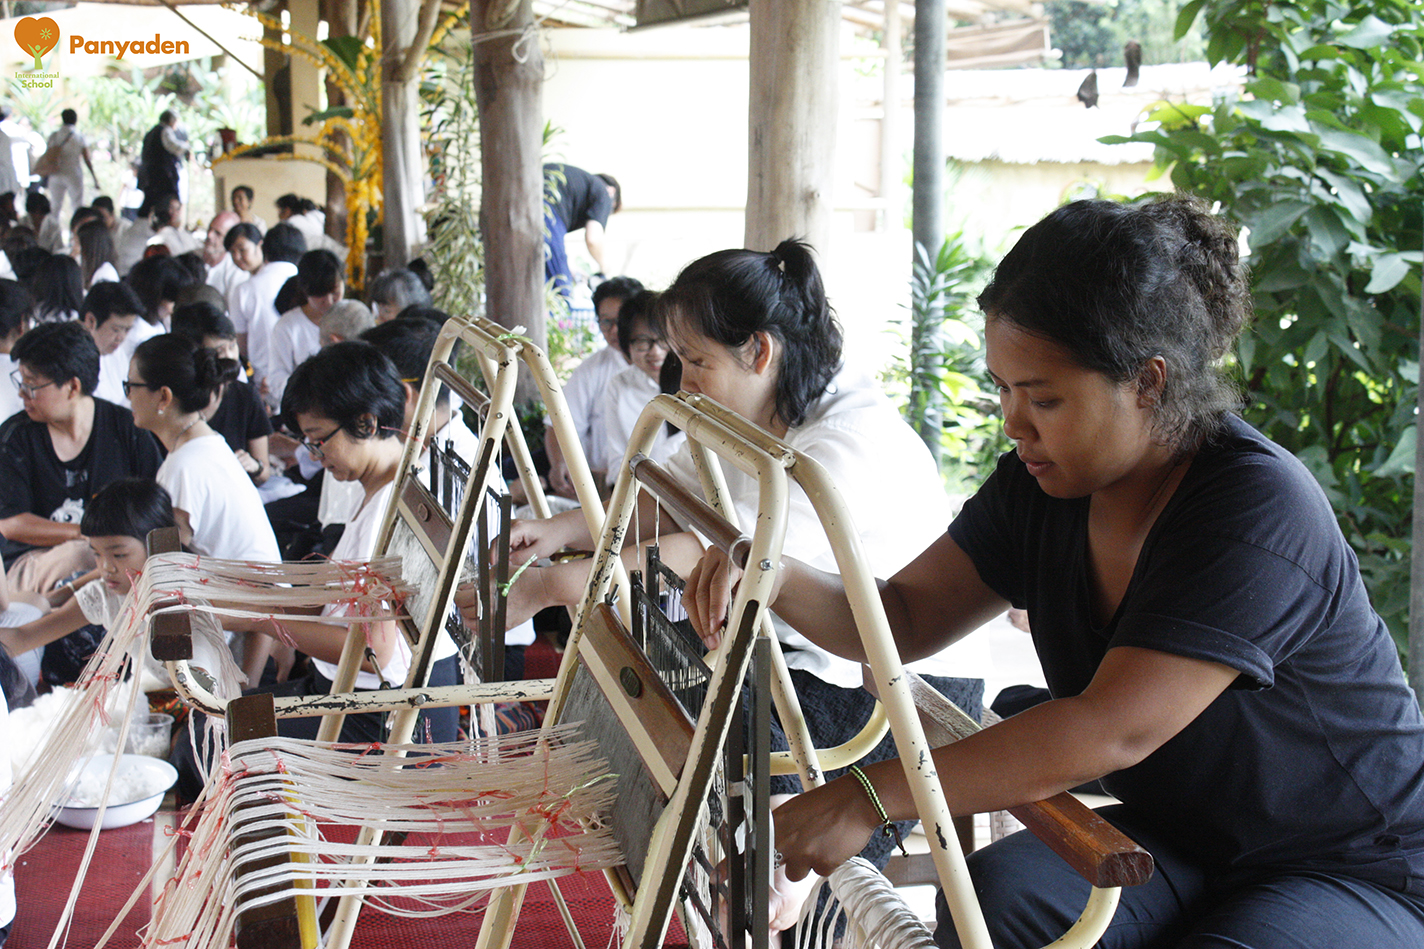 Weaving cotton threads, Panyaden at Jula Khatina in CHiang Rai